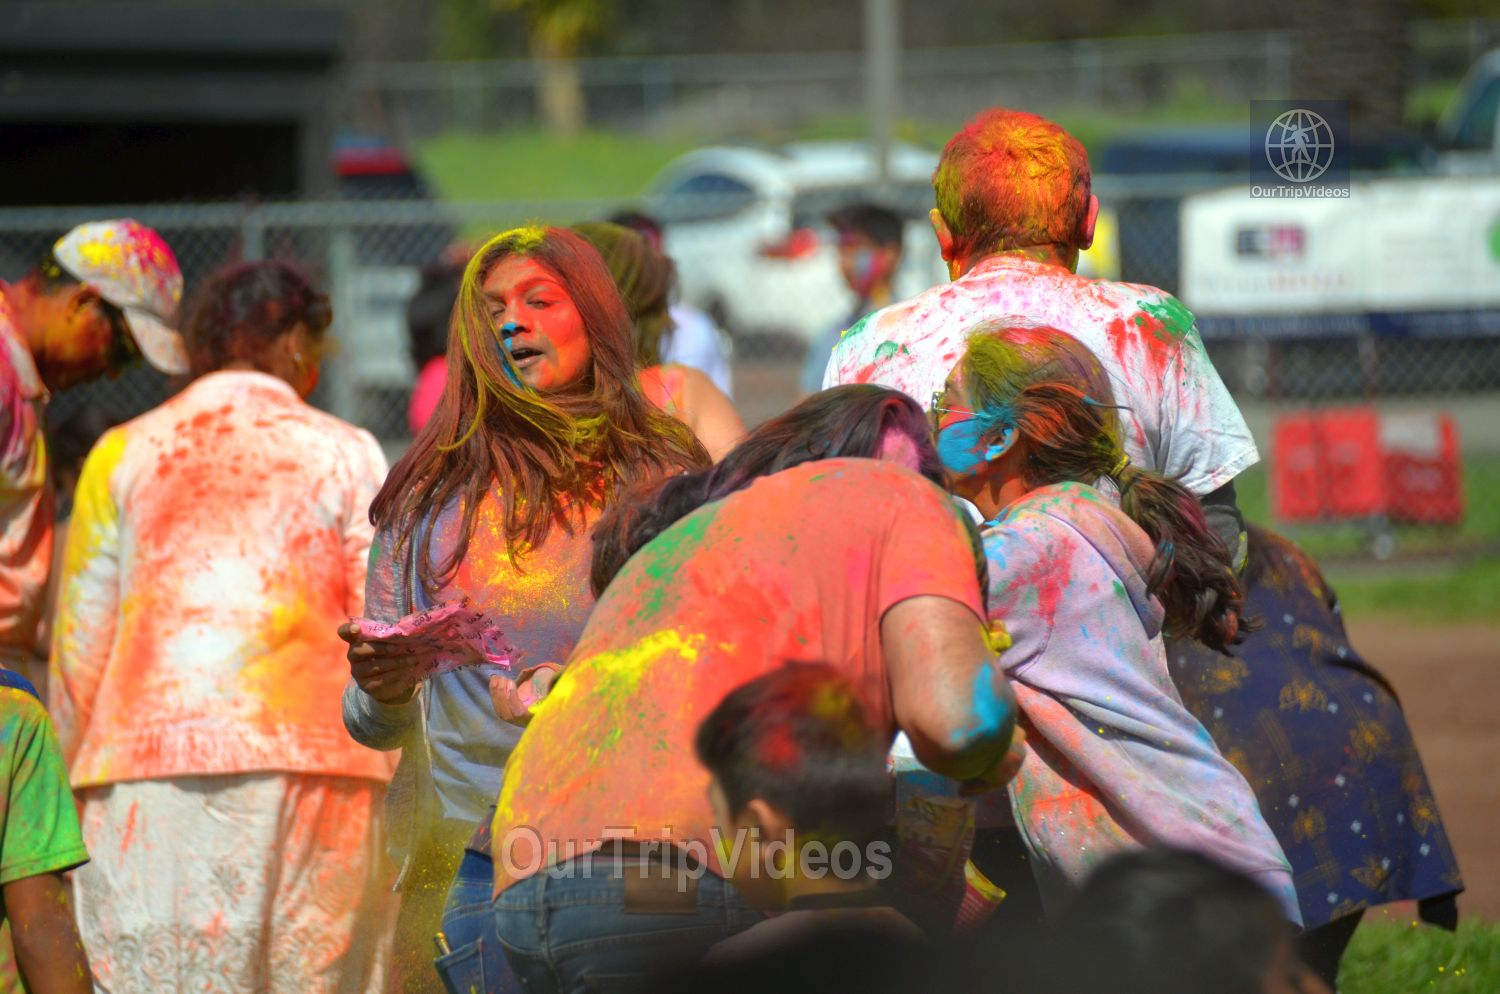 Festival of Colors - FOG and UPMA Holi, Fremont,CA, USA - Picture 16 of 25